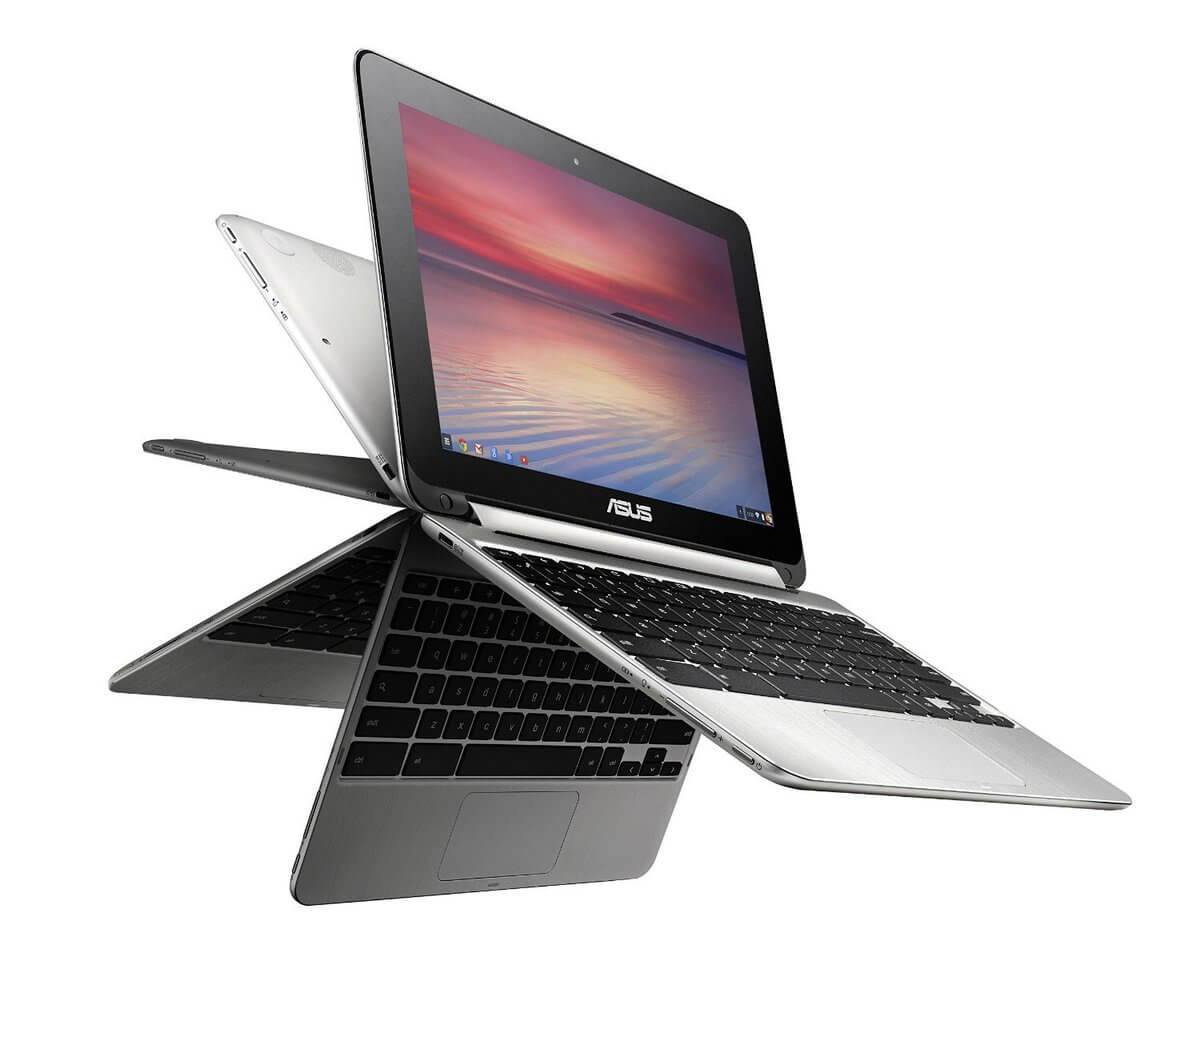 asus-chromebook-flip-c100-press-image-2